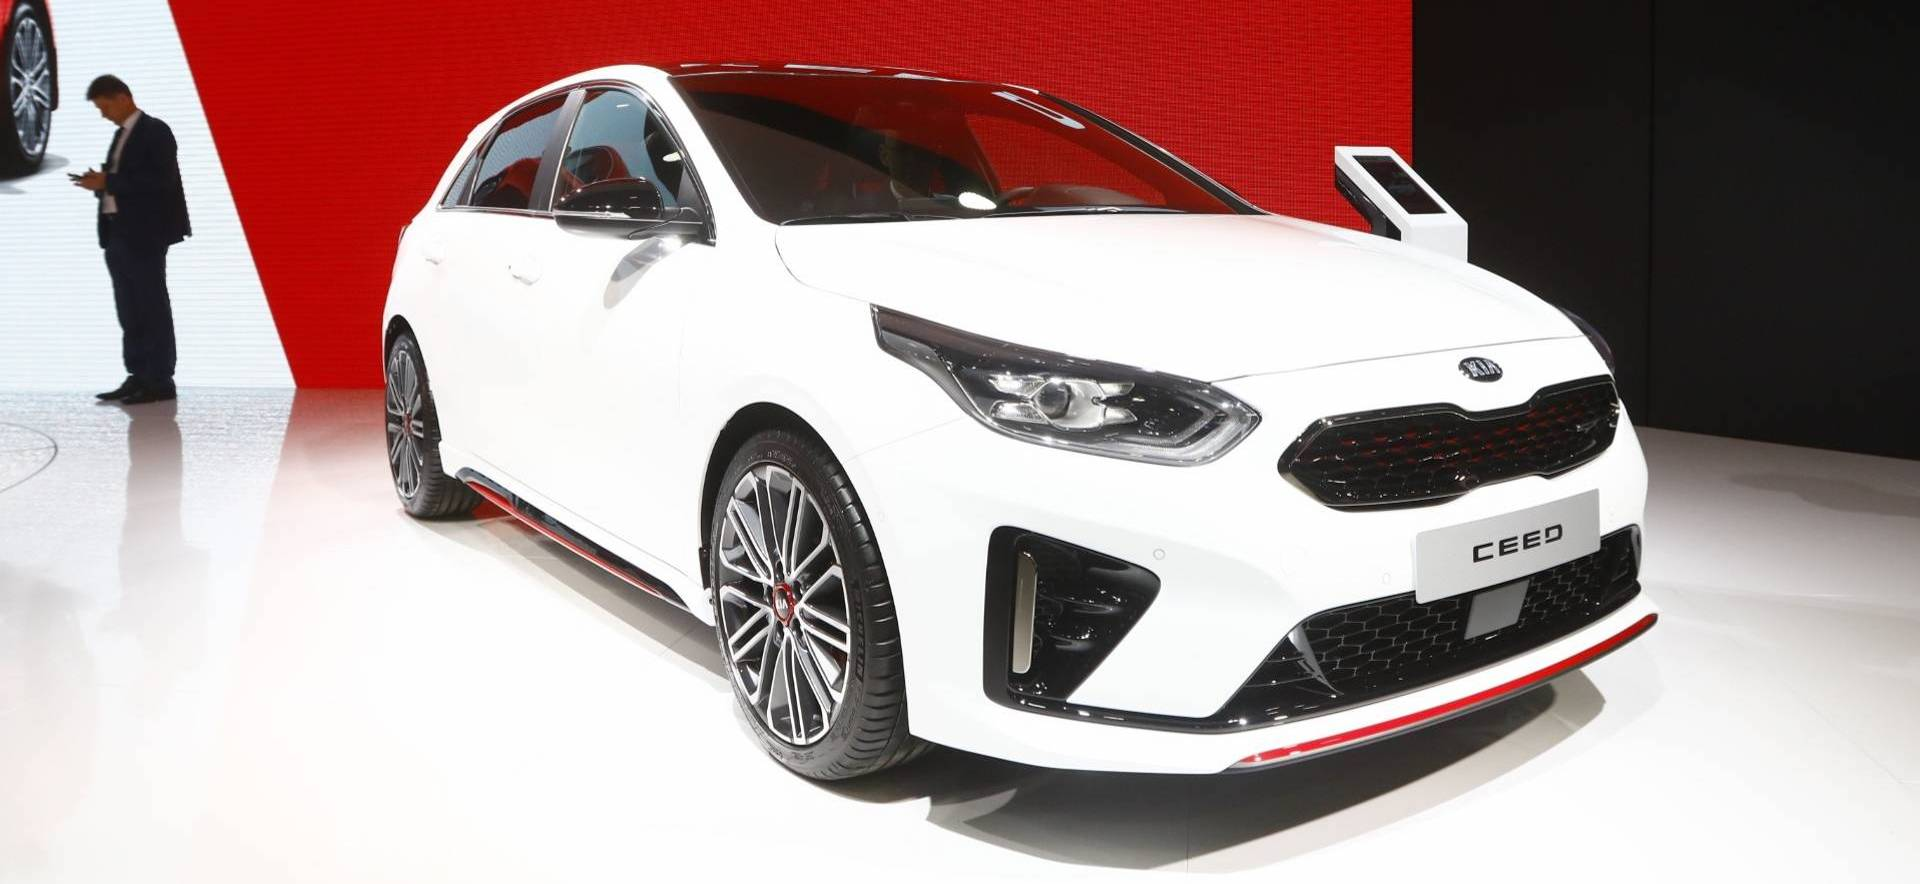 2019 Kia Ceed GT Arrives In Paris With Sporty Looks, 201 HP